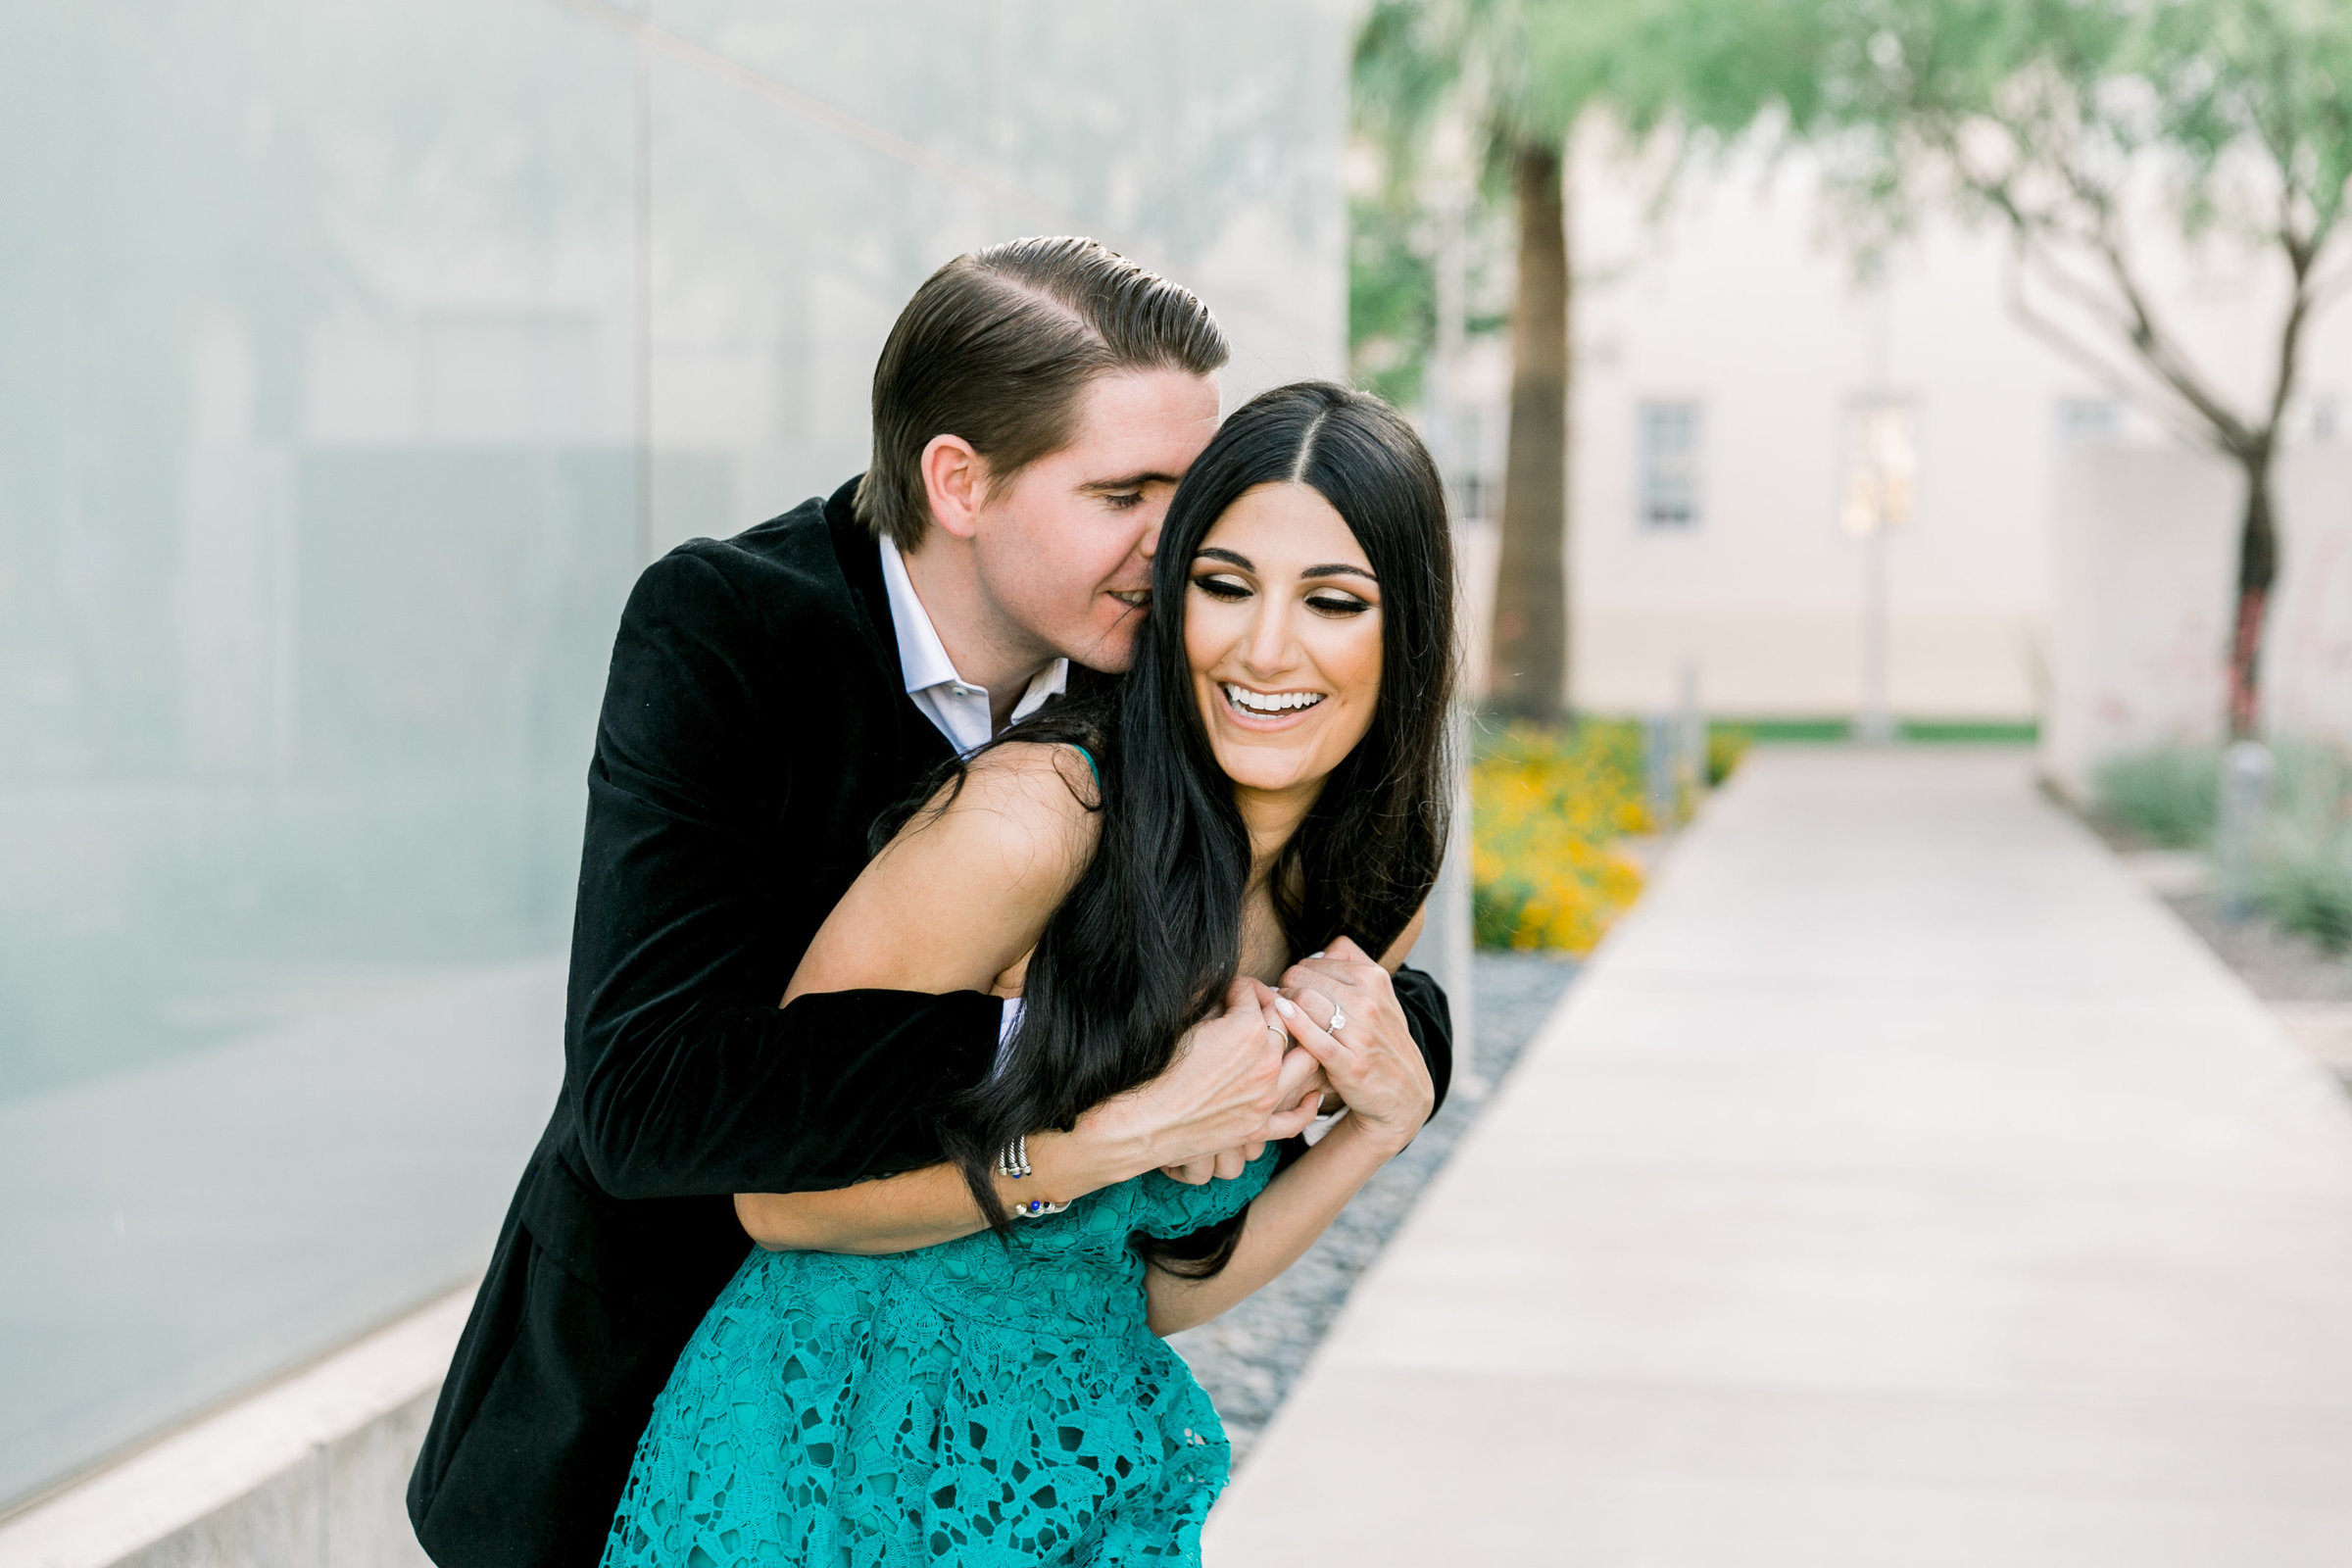 Karlie Colleen Photography - Arizona Engagement City Shoot - Kim & Tim-113